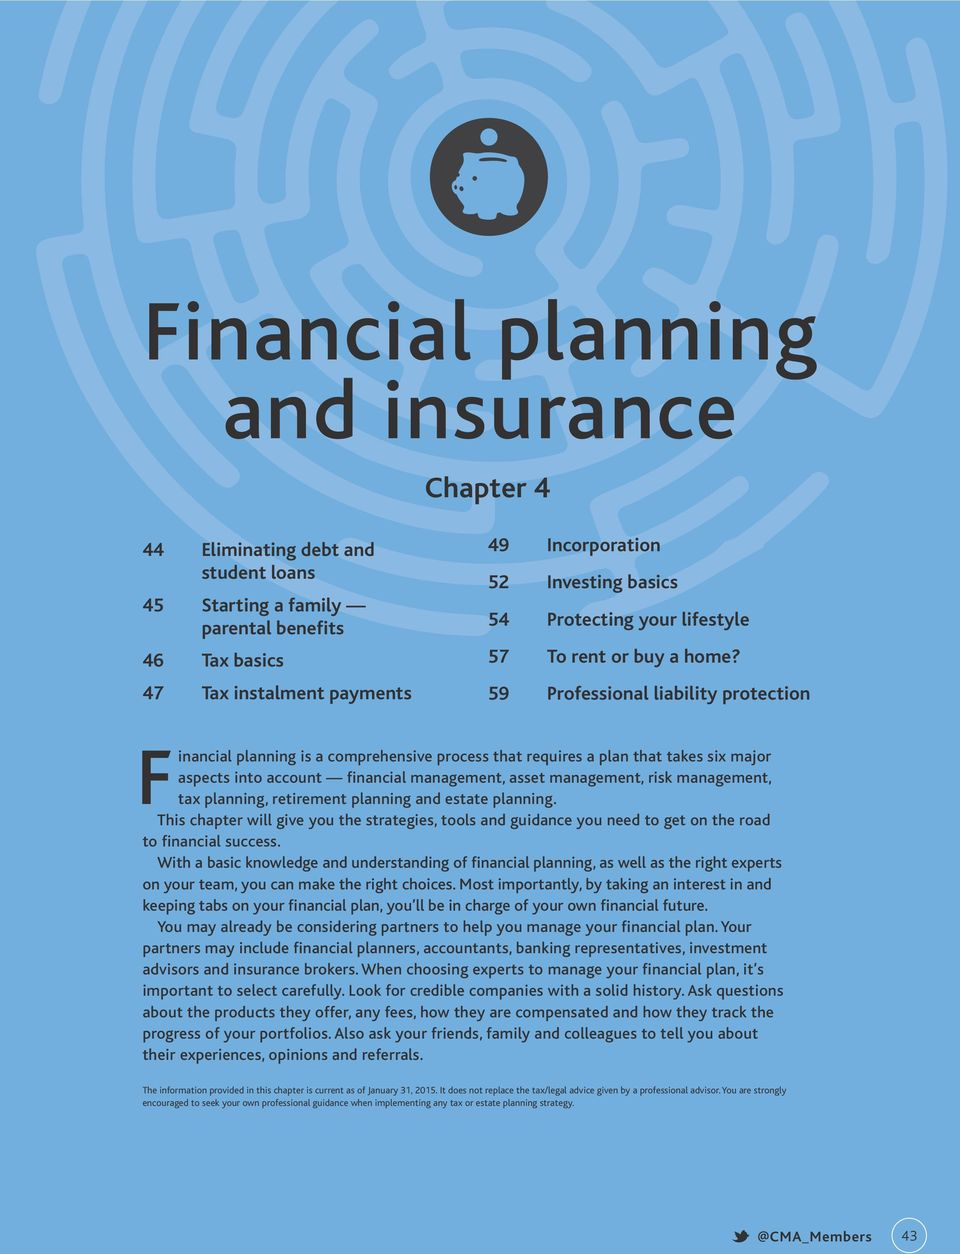 59 Professional liability protection Financial planning is a comprehensive process that requires a plan that takes six major aspects into account financial management, asset management, risk